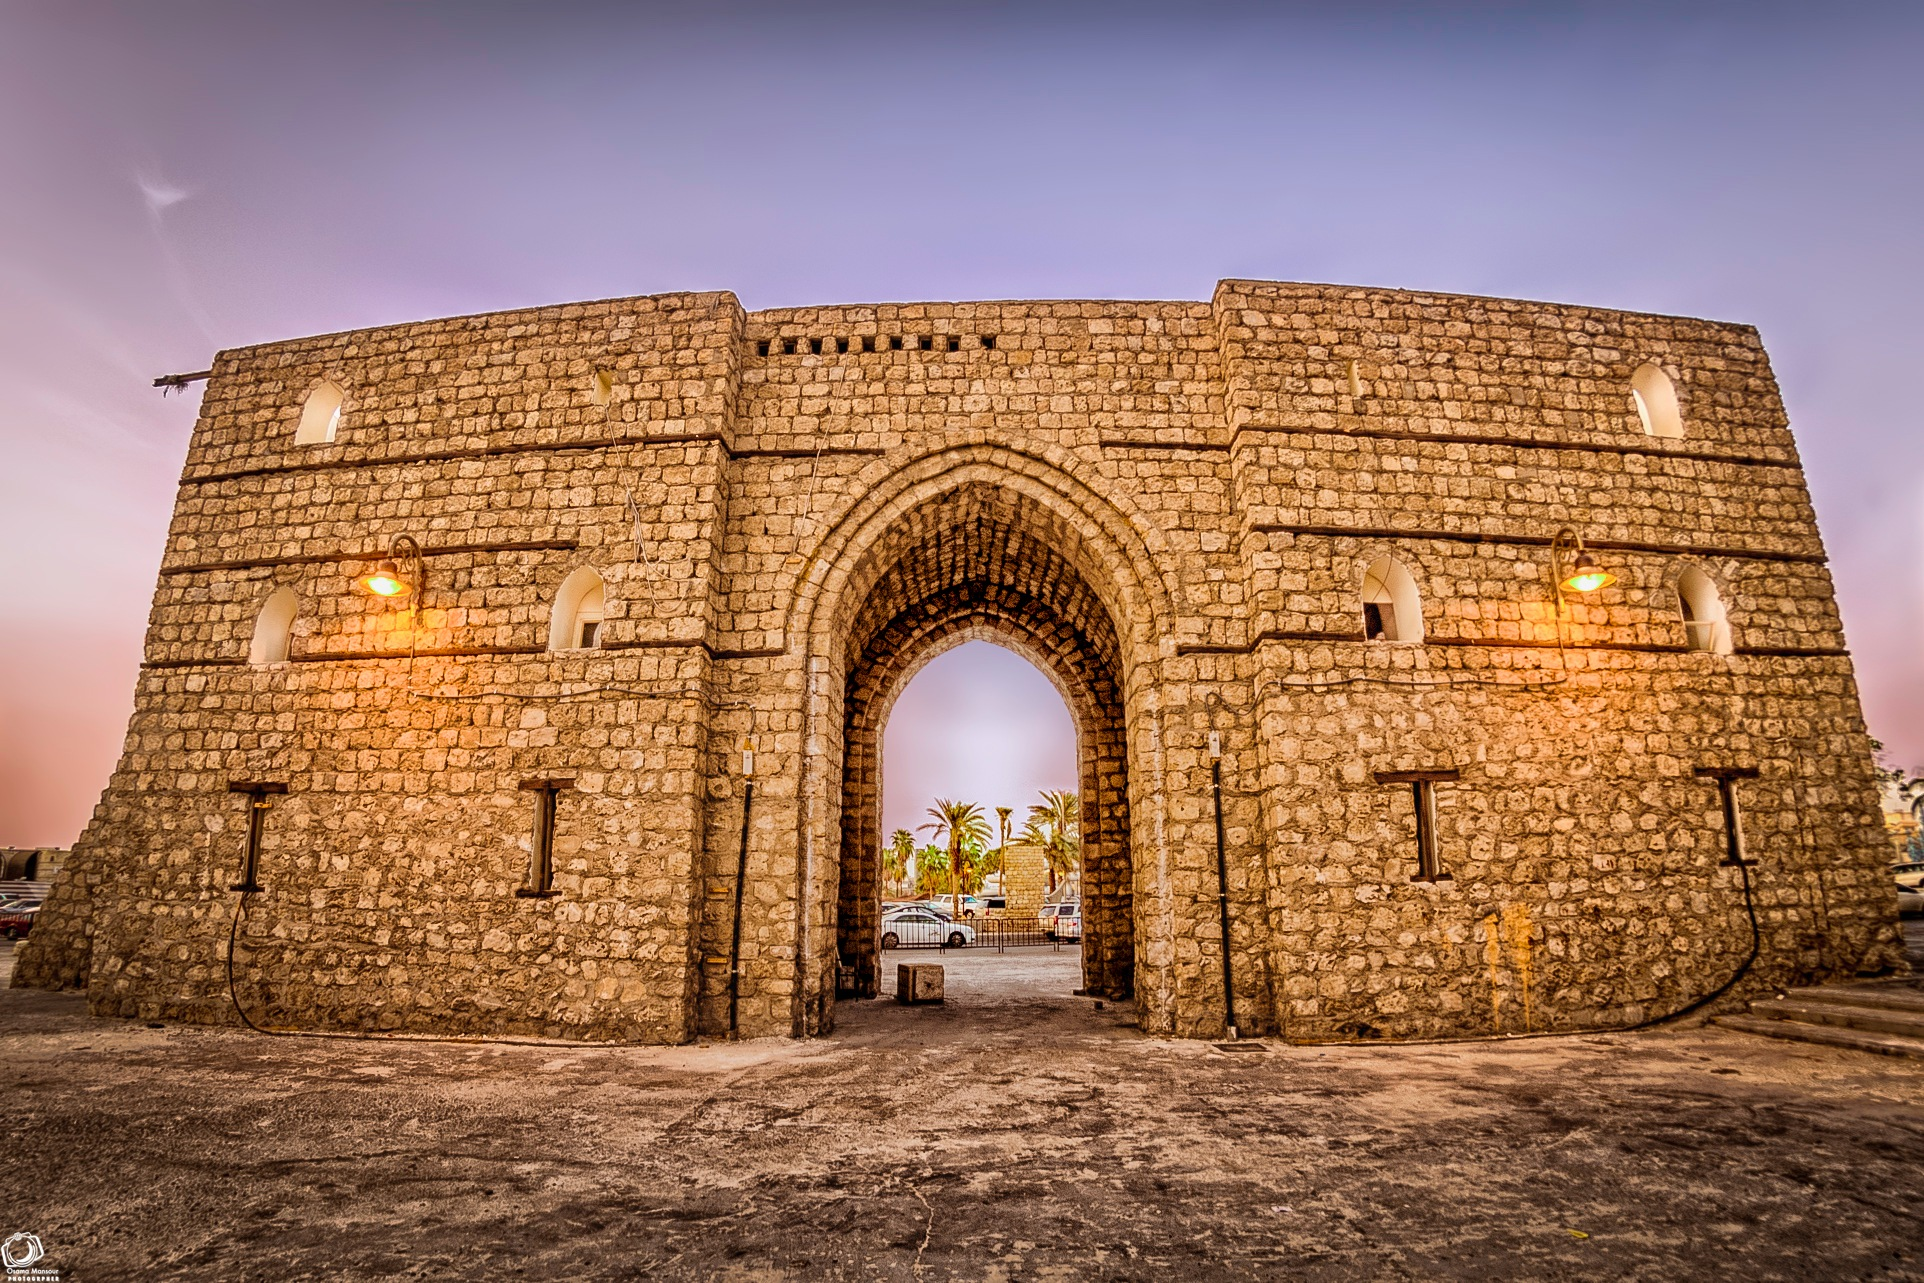 Door of old city by Osama Mansour